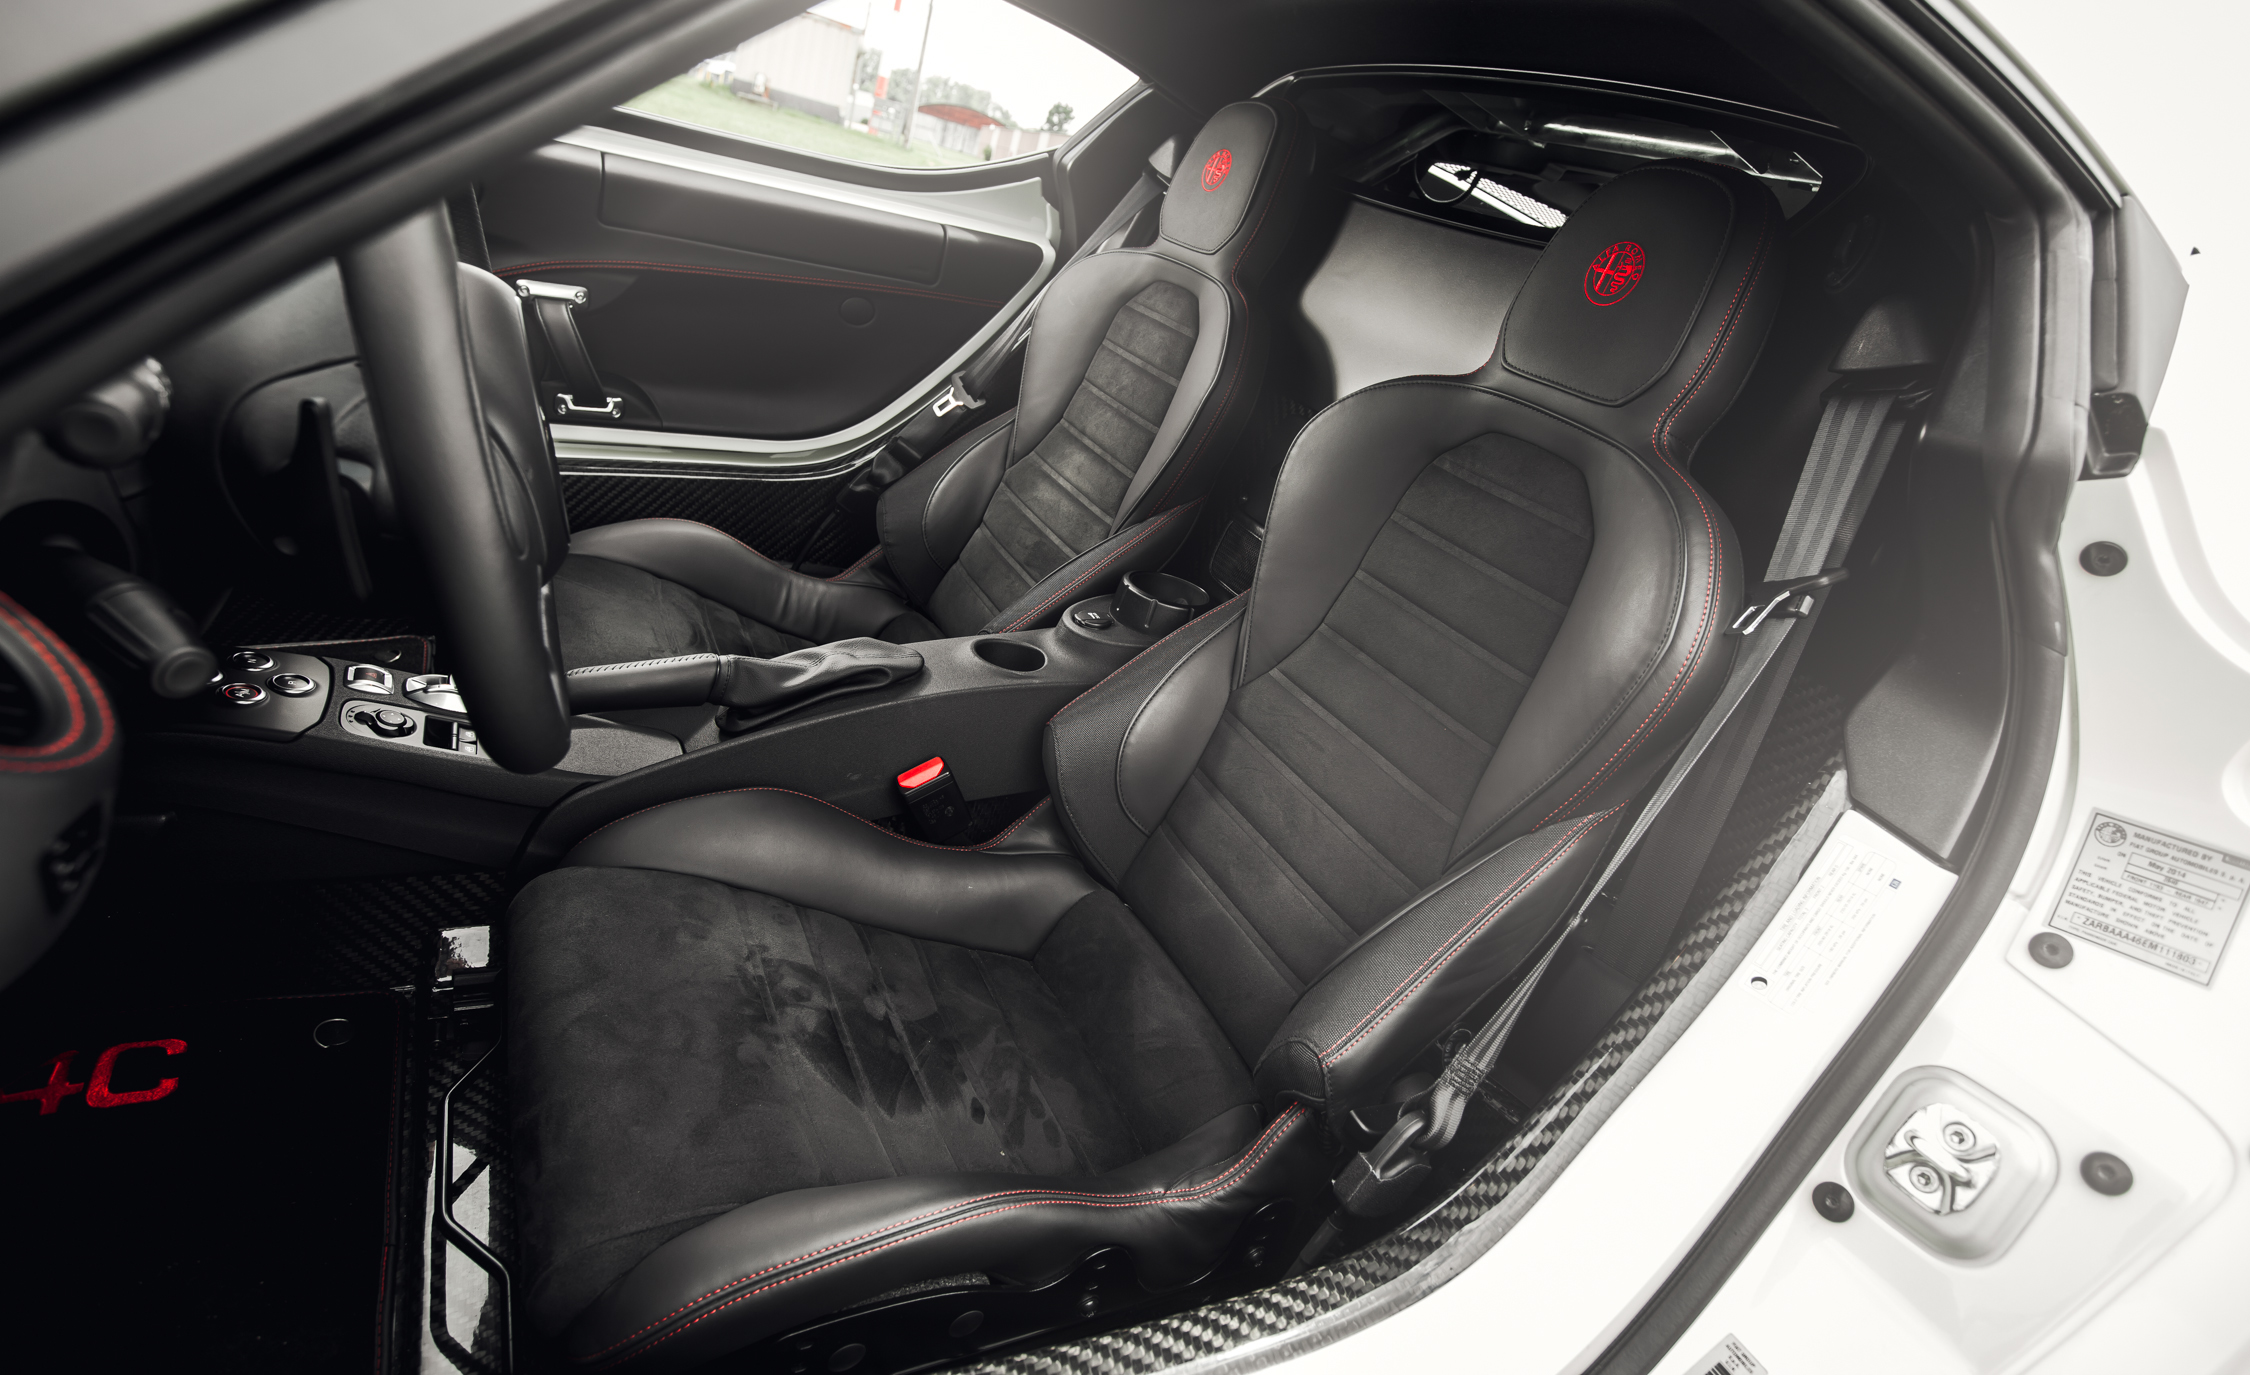 2015 Alfa Romeo 4C Interior (Photo 24 of 25)